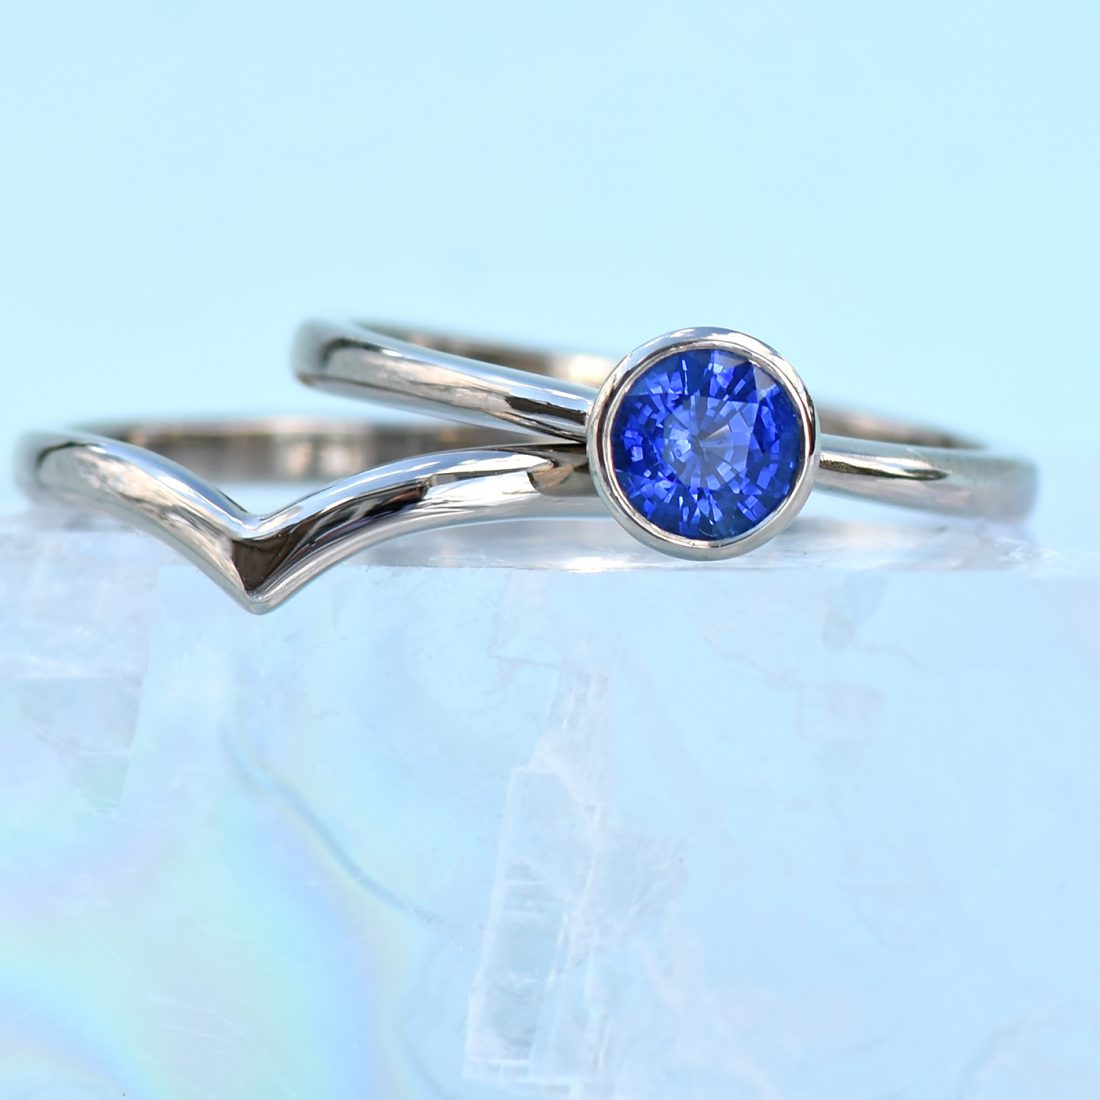 18ct white gold & blue sapphire stacking ring set